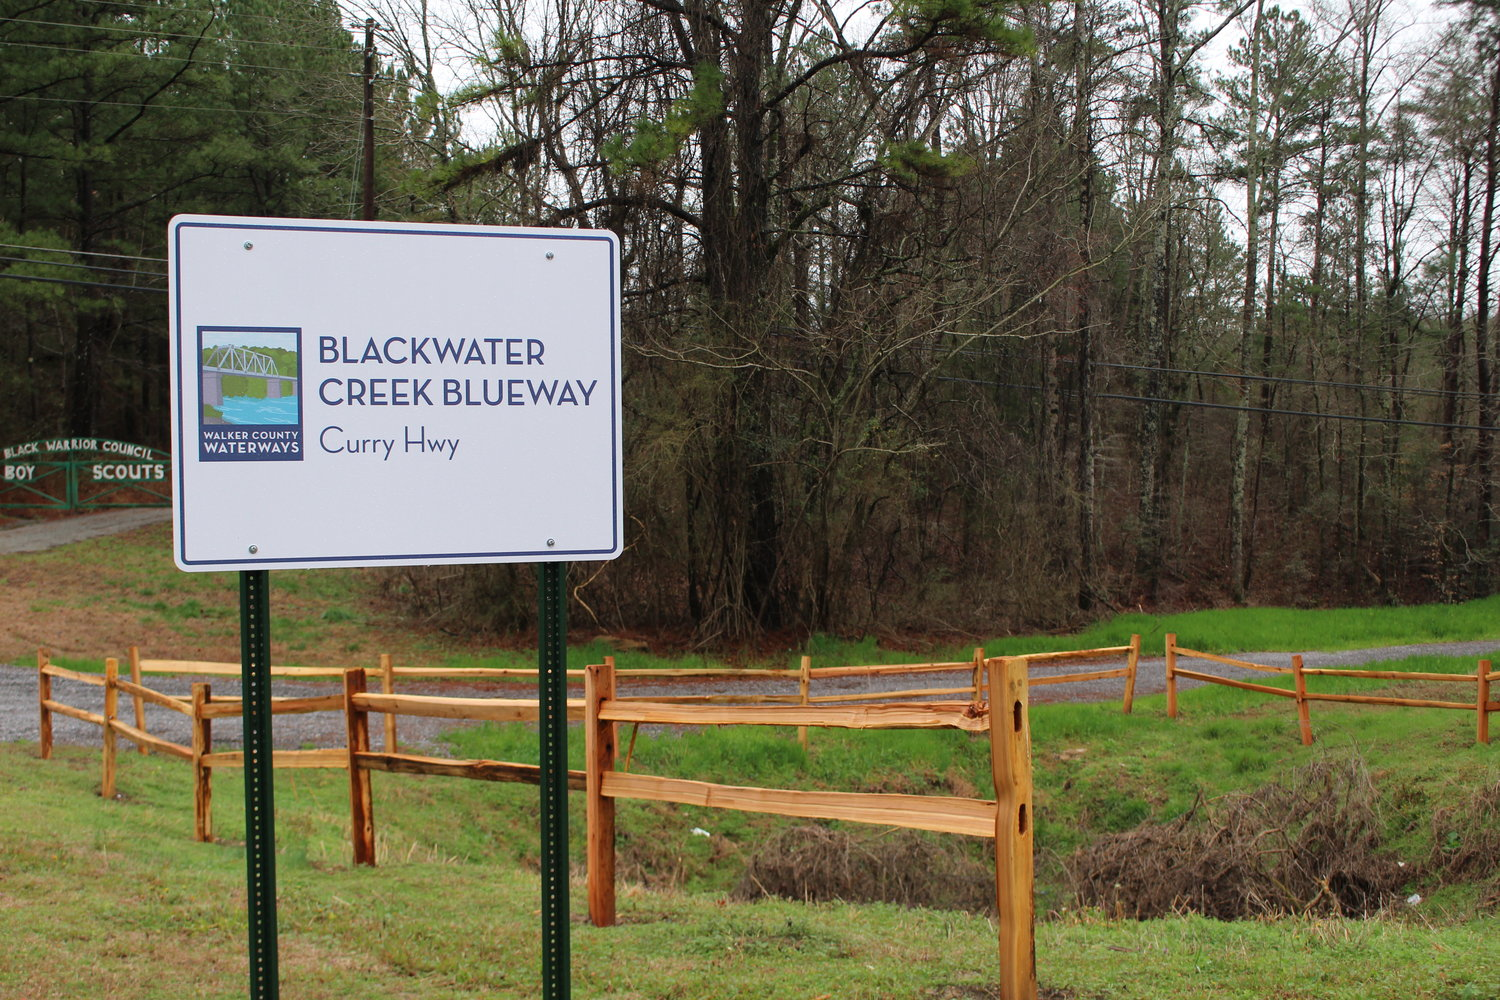 New signs are in place signaling the new Blackwater Creek access point along Curry Highway.